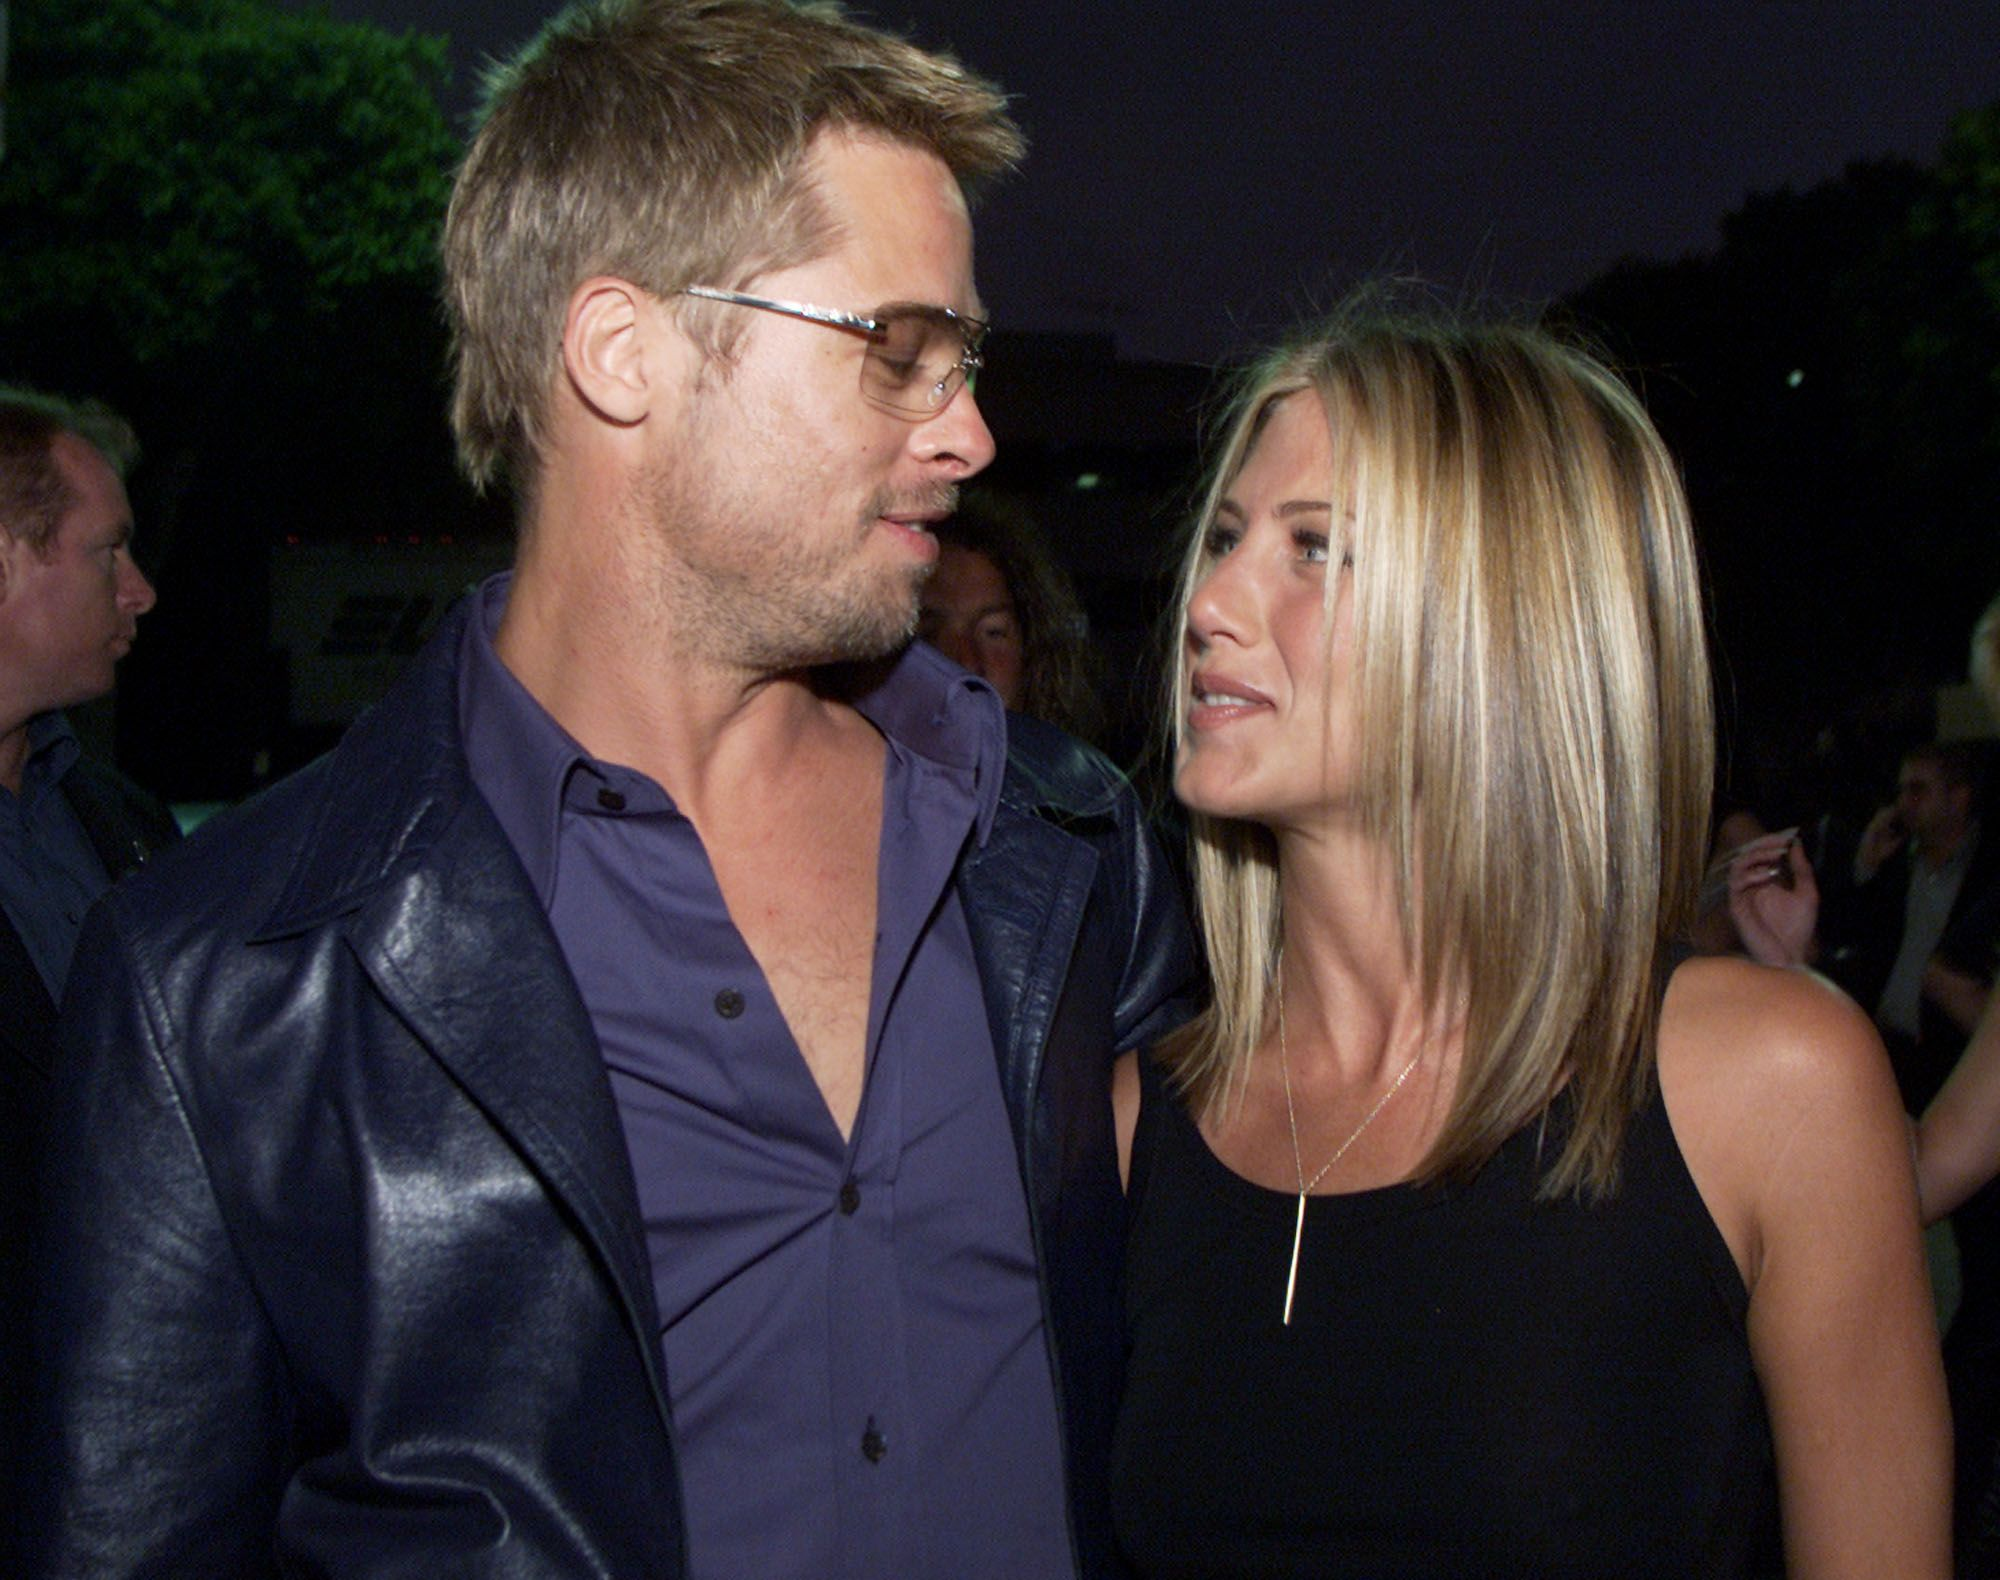 Jennifer Aniston revealed it was awful for her after her break-up with Brad Pitt / Getty Images